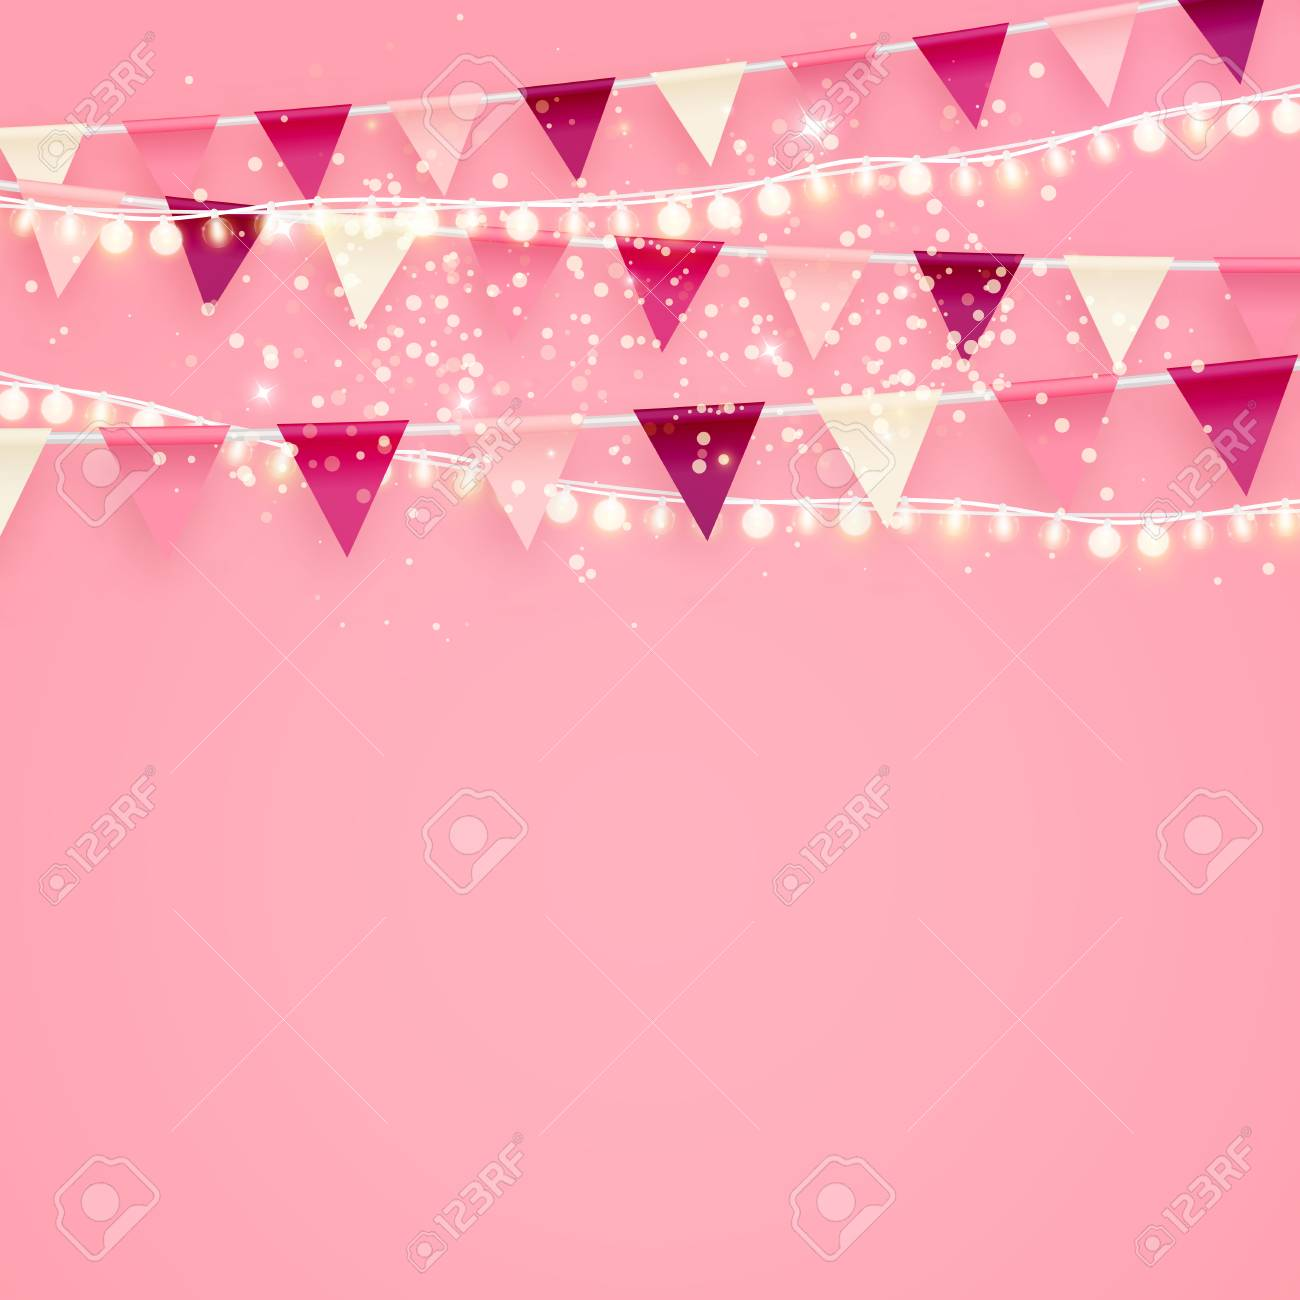 Romantic pink minimalist vector background with party flags buntings romantic pink minimalist vector background with party flags buntings and shiny festive lighting perfect for valentines stopboris Image collections